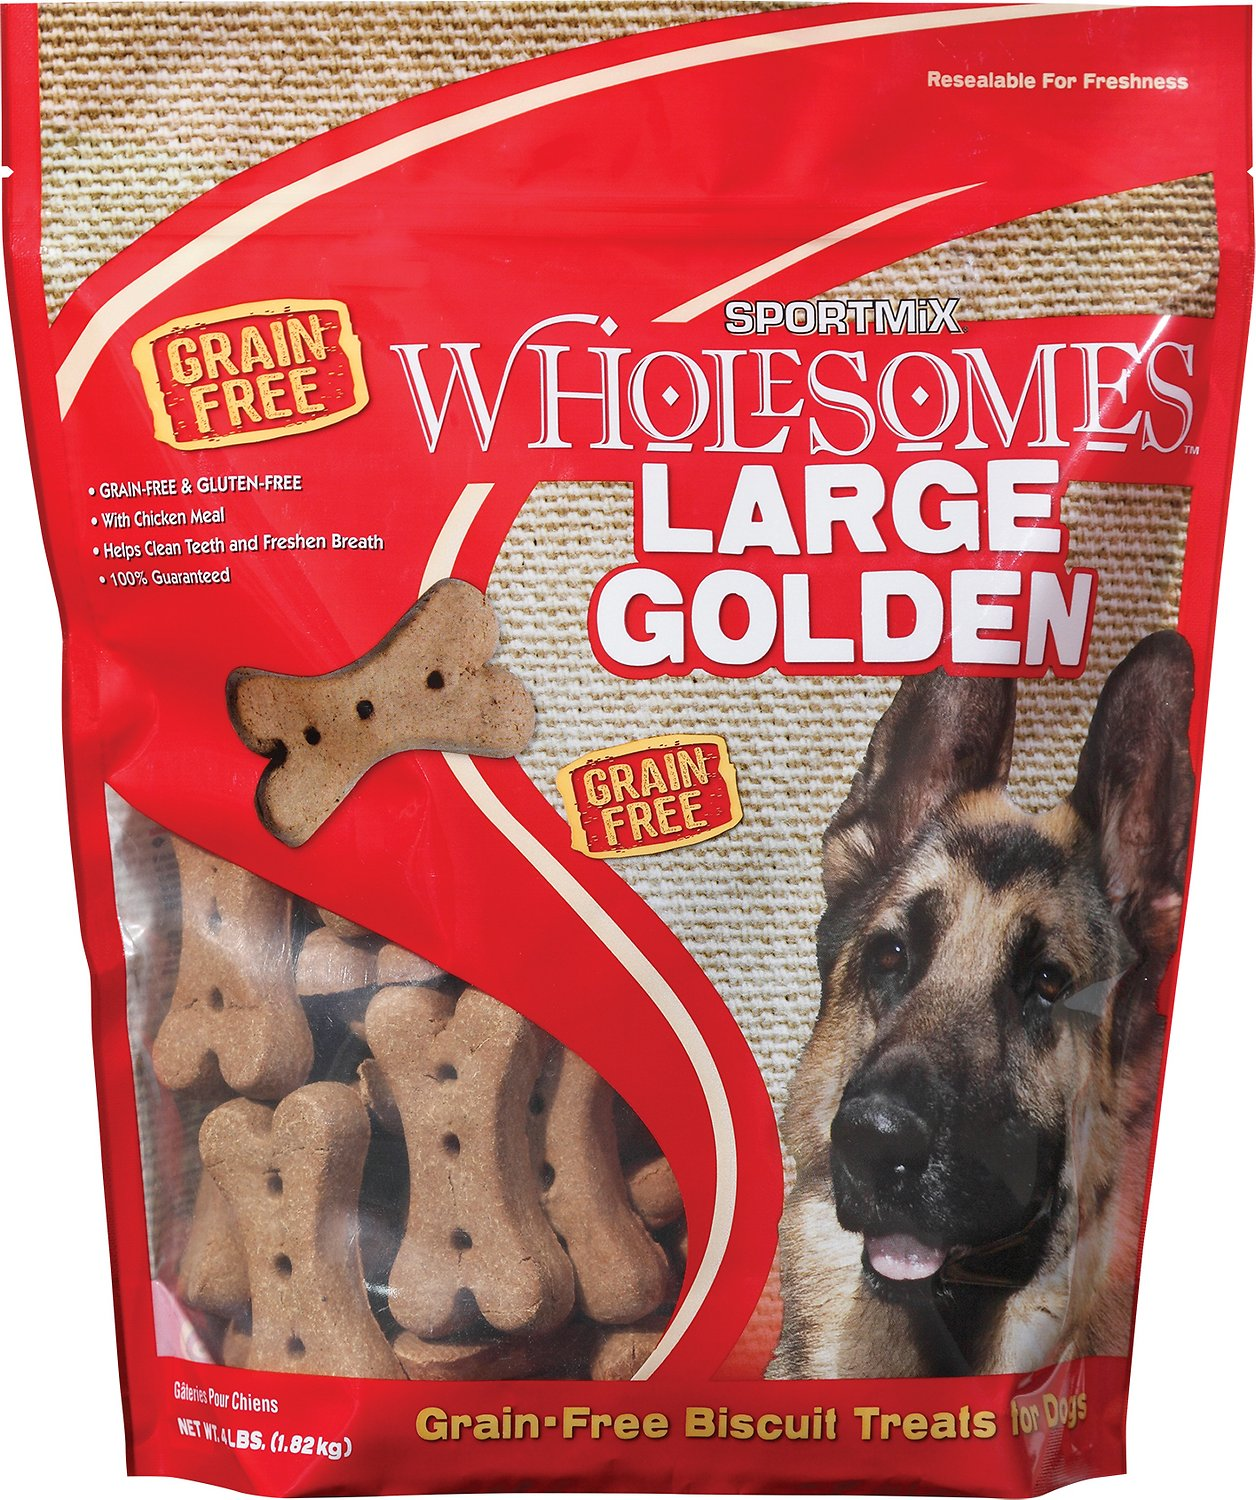 SPORTMiX Wholesomes Grain-Free Large Golden Biscuit Dog Treats, 4-lb